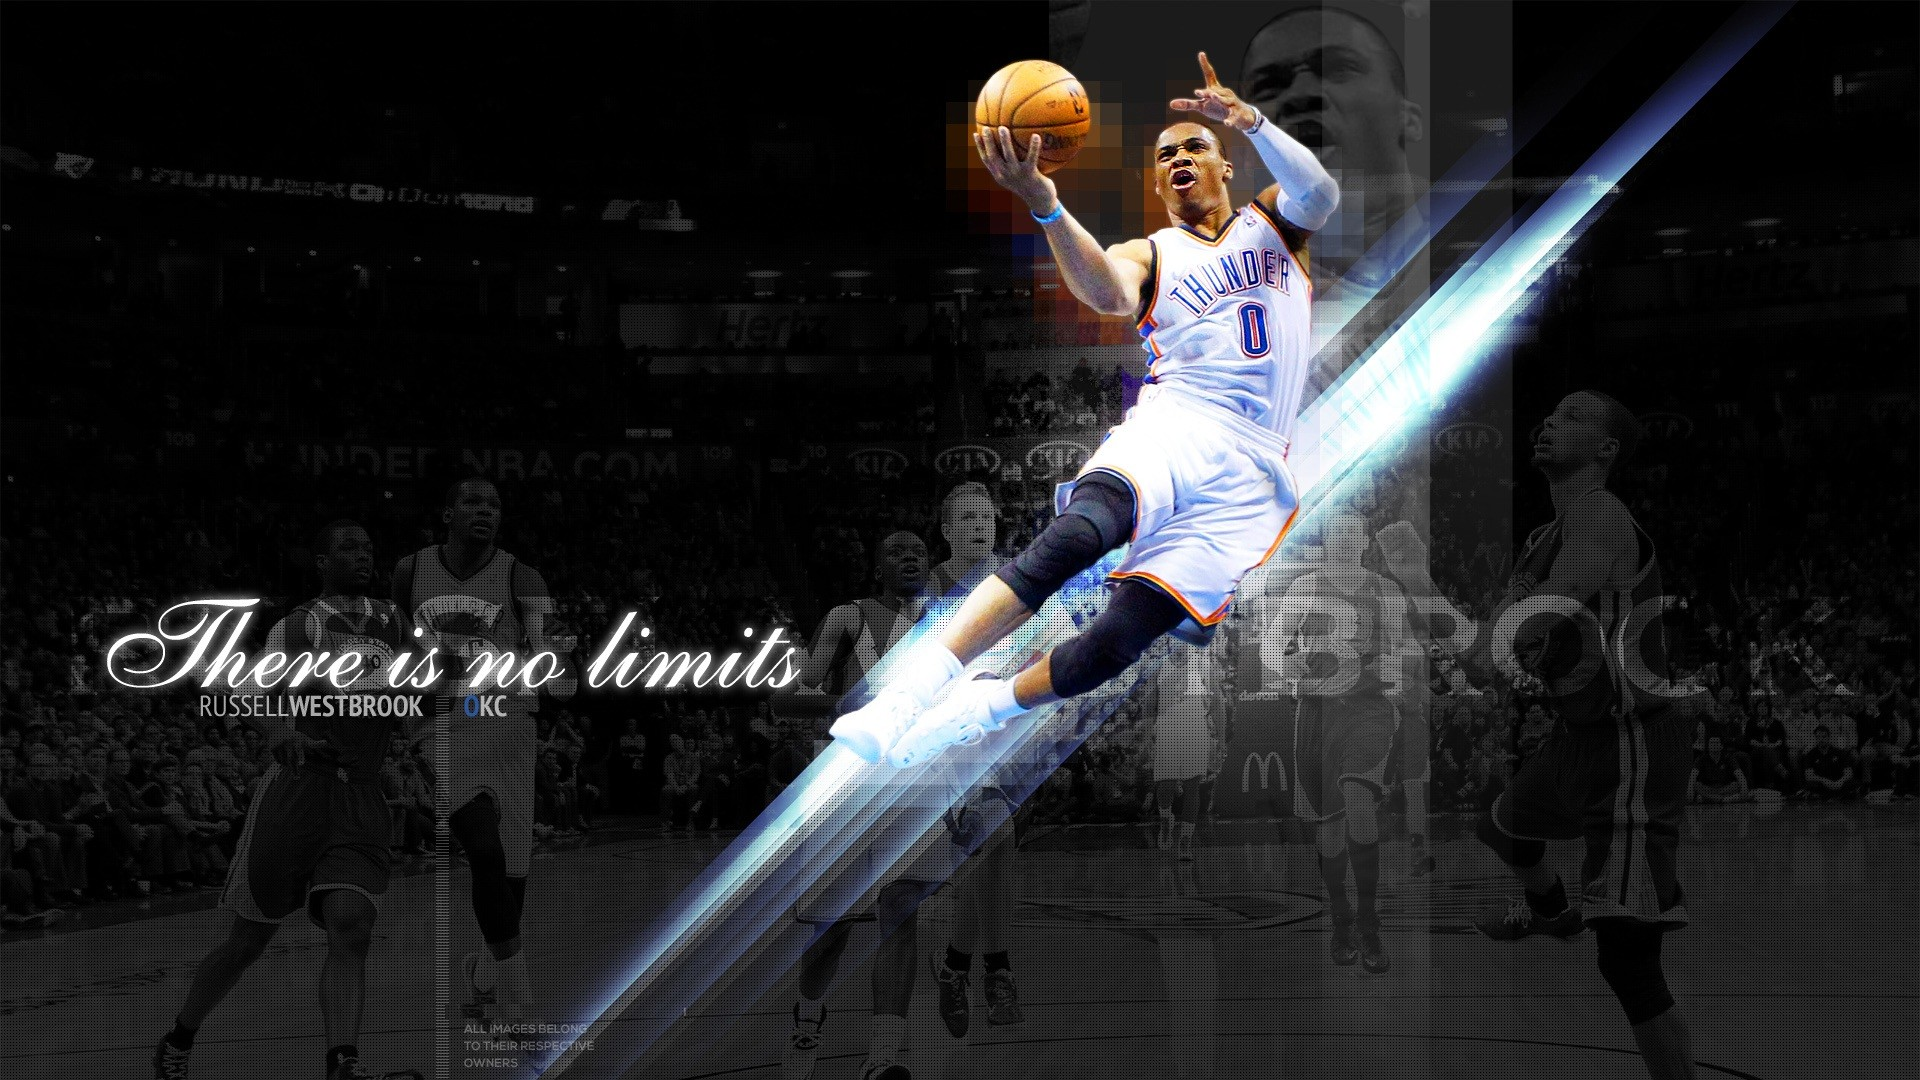 Russell Westbrook HD Images 5 | Russell Westbrook HD Images | Pinterest | Russell  westbrook, Hd images and Nba players